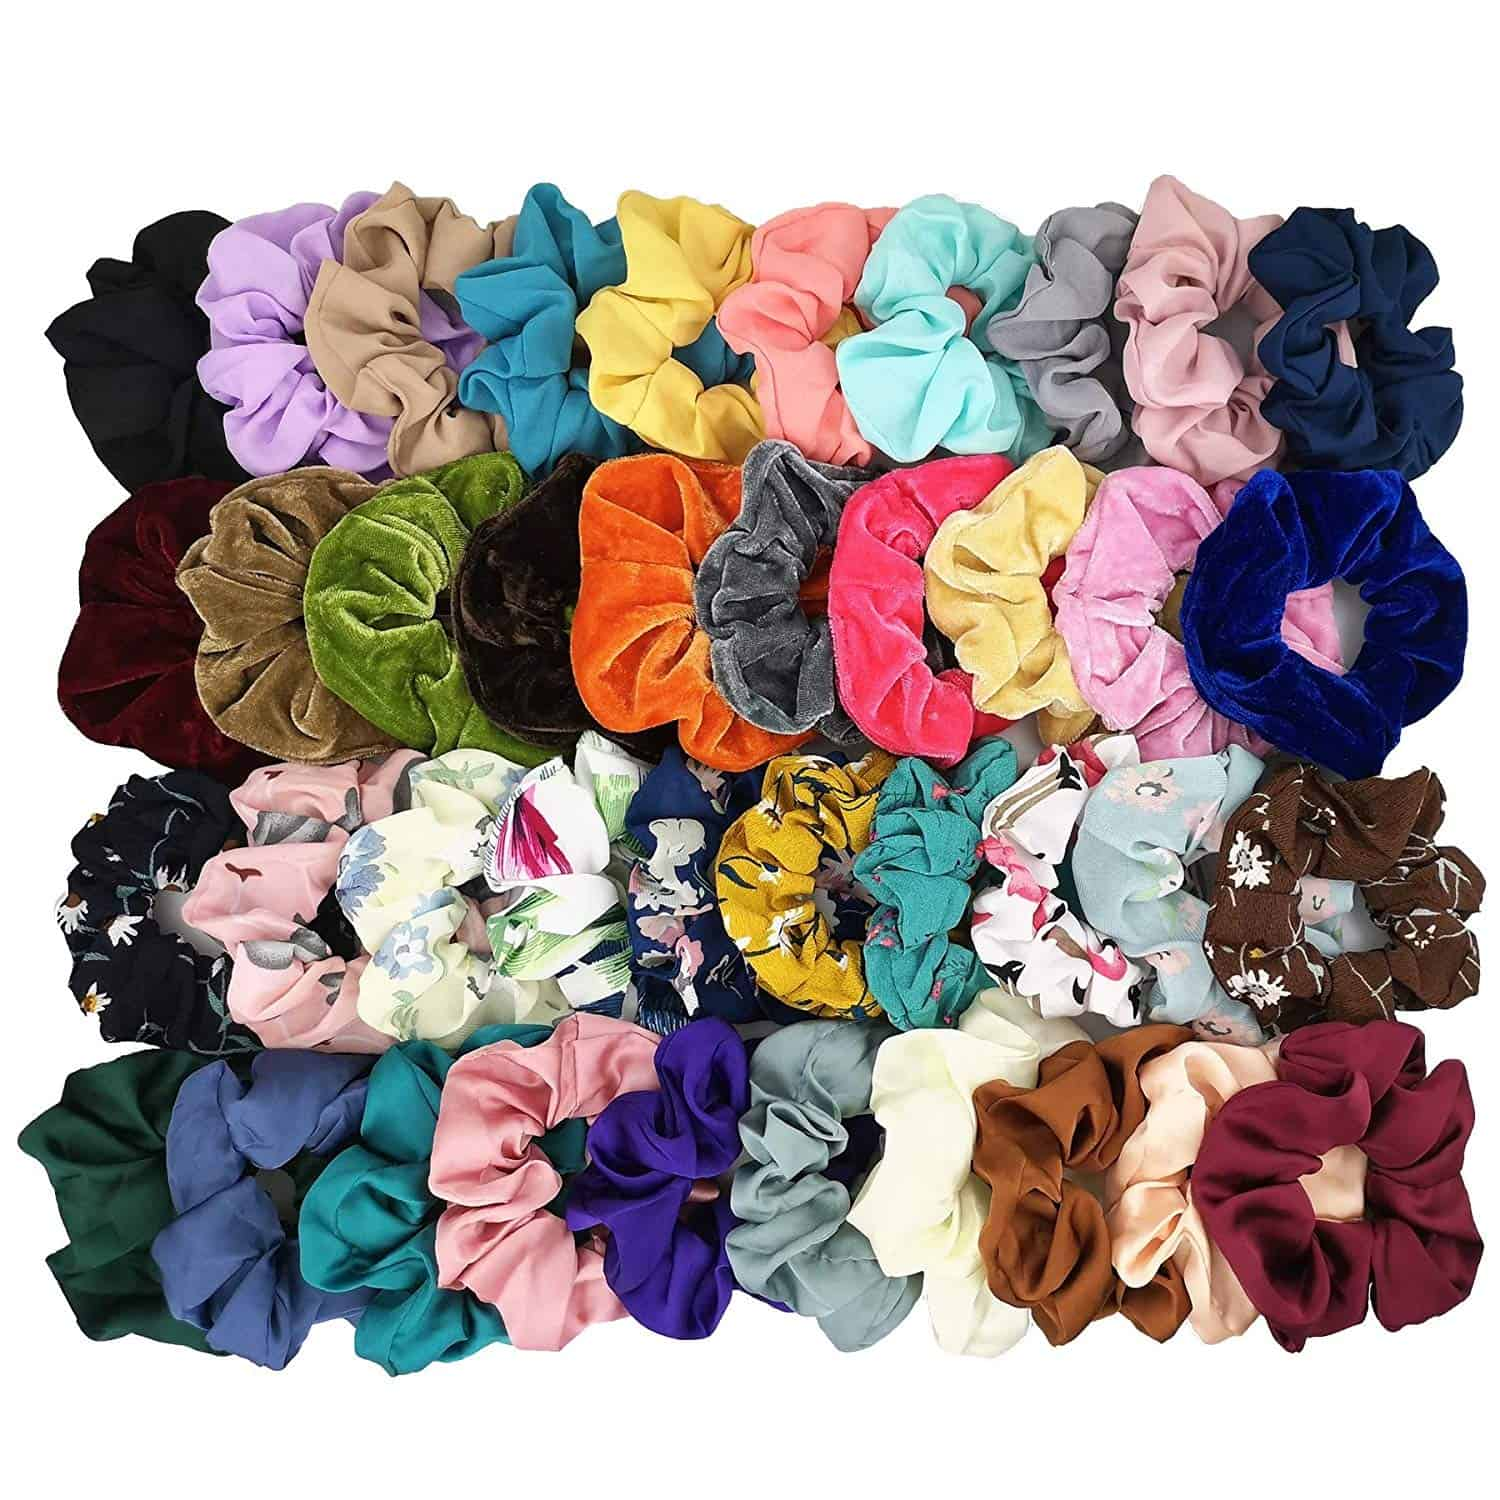 A group of scrunchies.